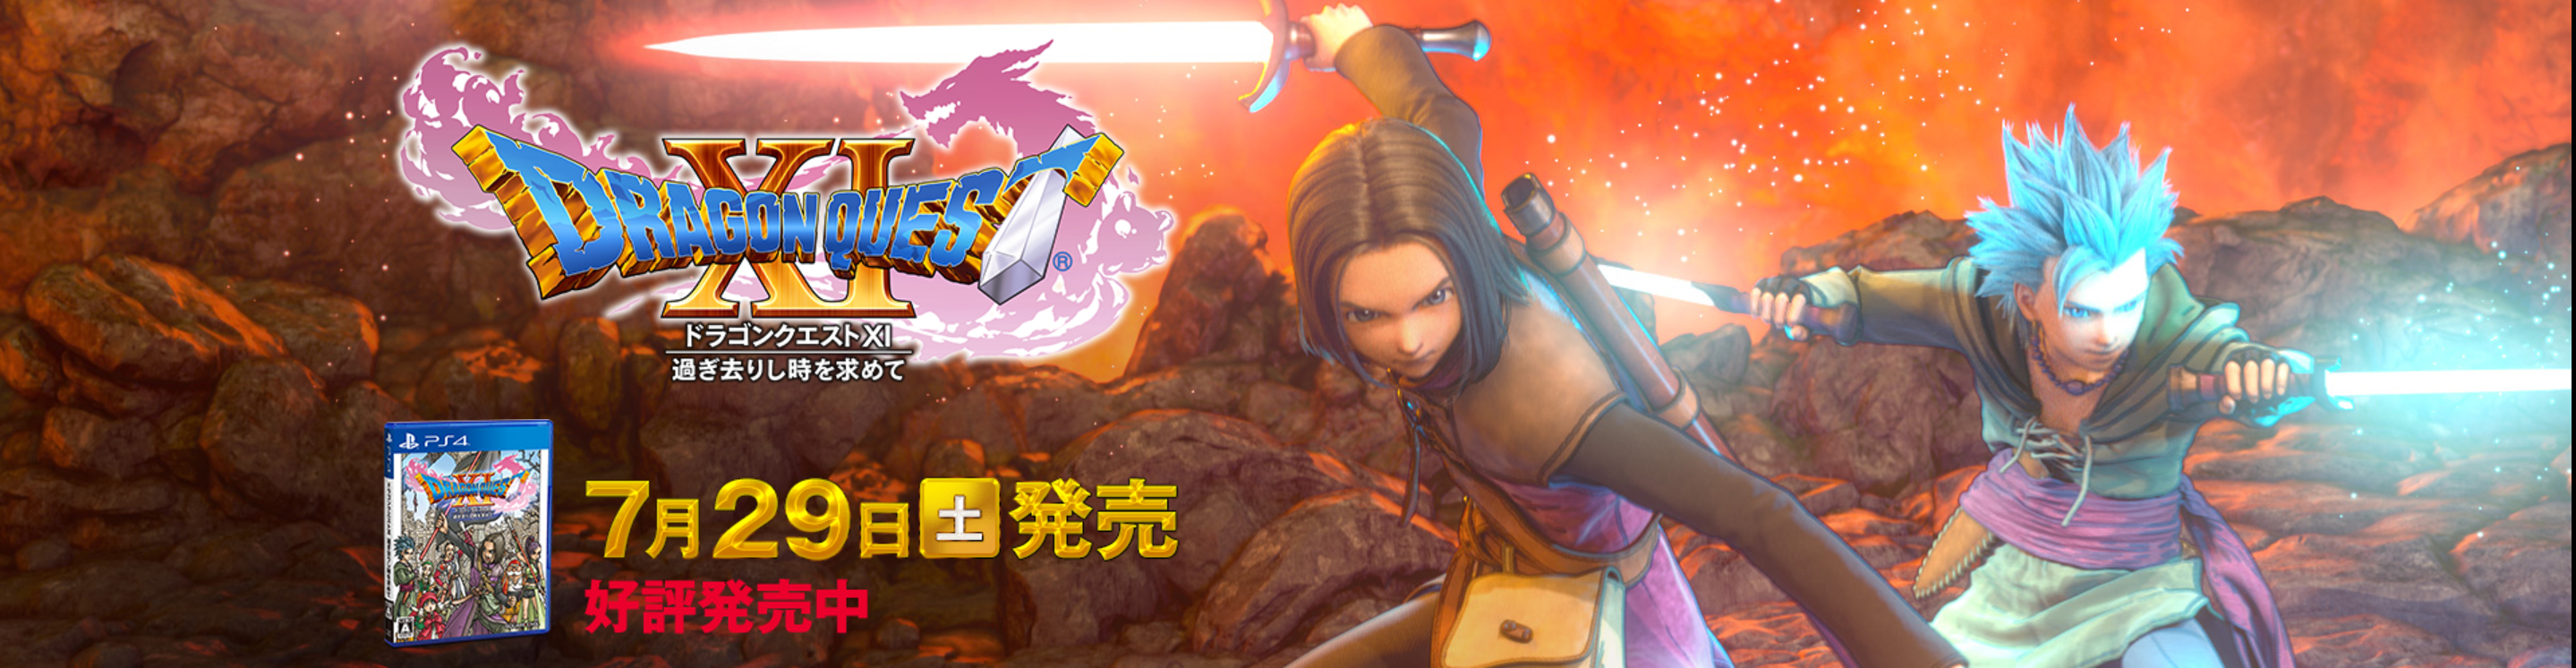 Dragon Quest XI: Echoes of an Elusive Age - Japanese Banner